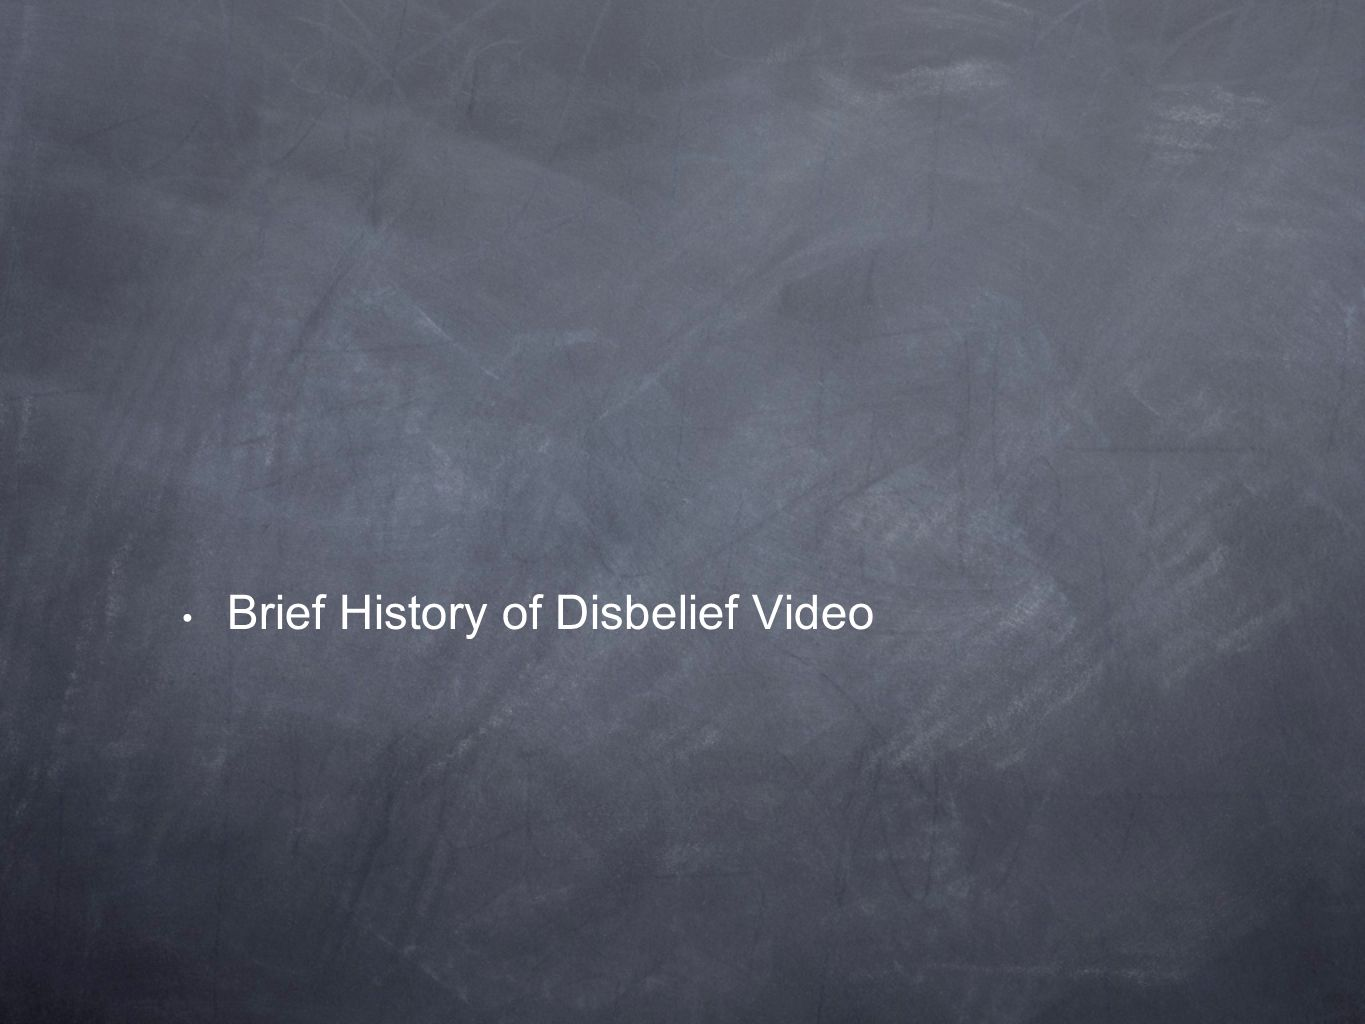 Brief History of Disbelief Video